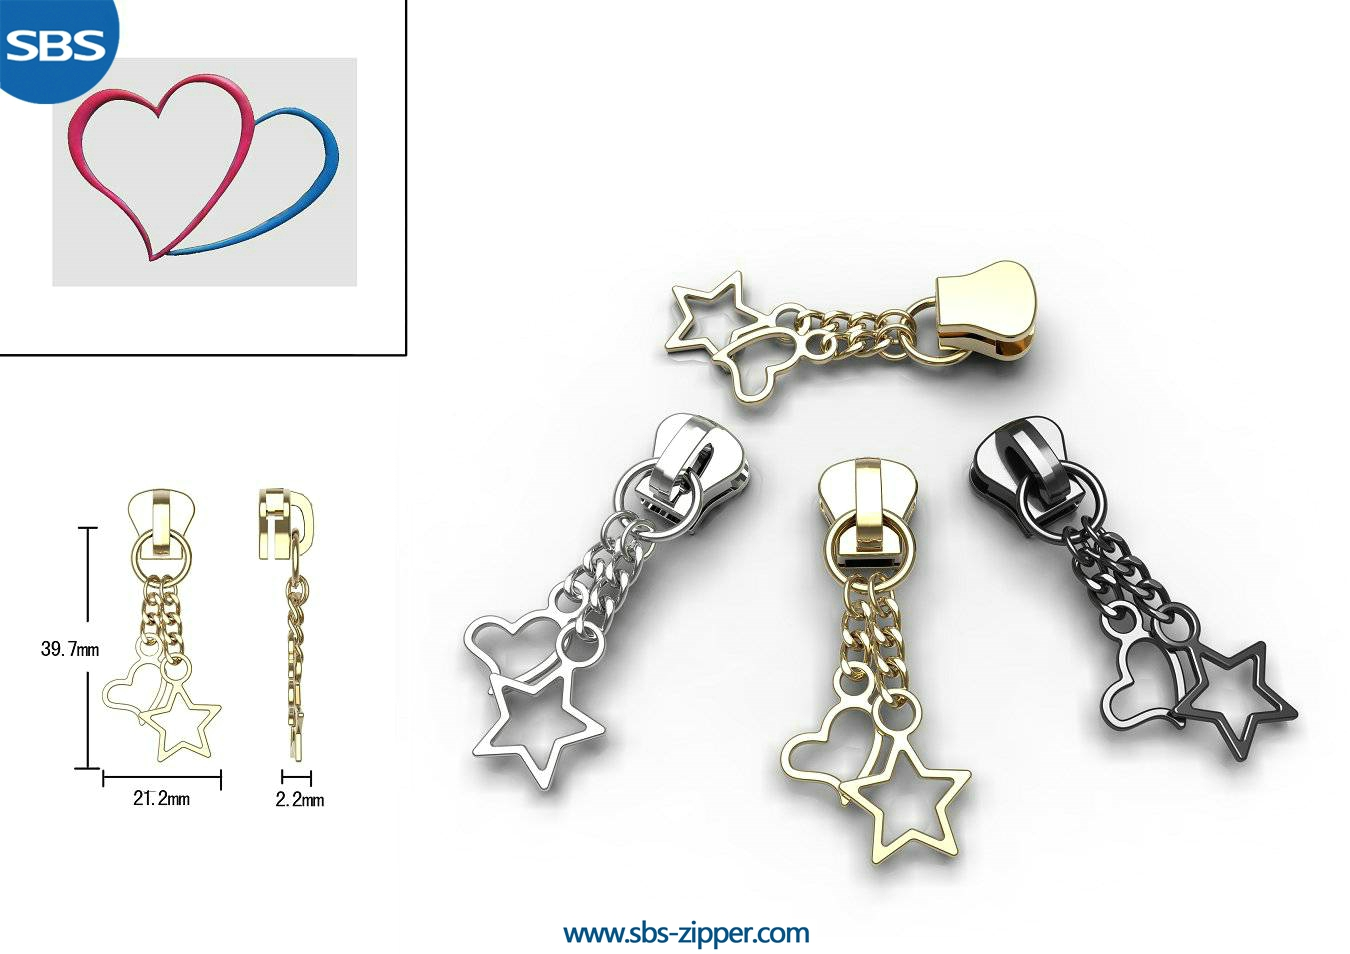 Customized Zipper Pulls Manufacturer 16AC001 | SBS Zipper